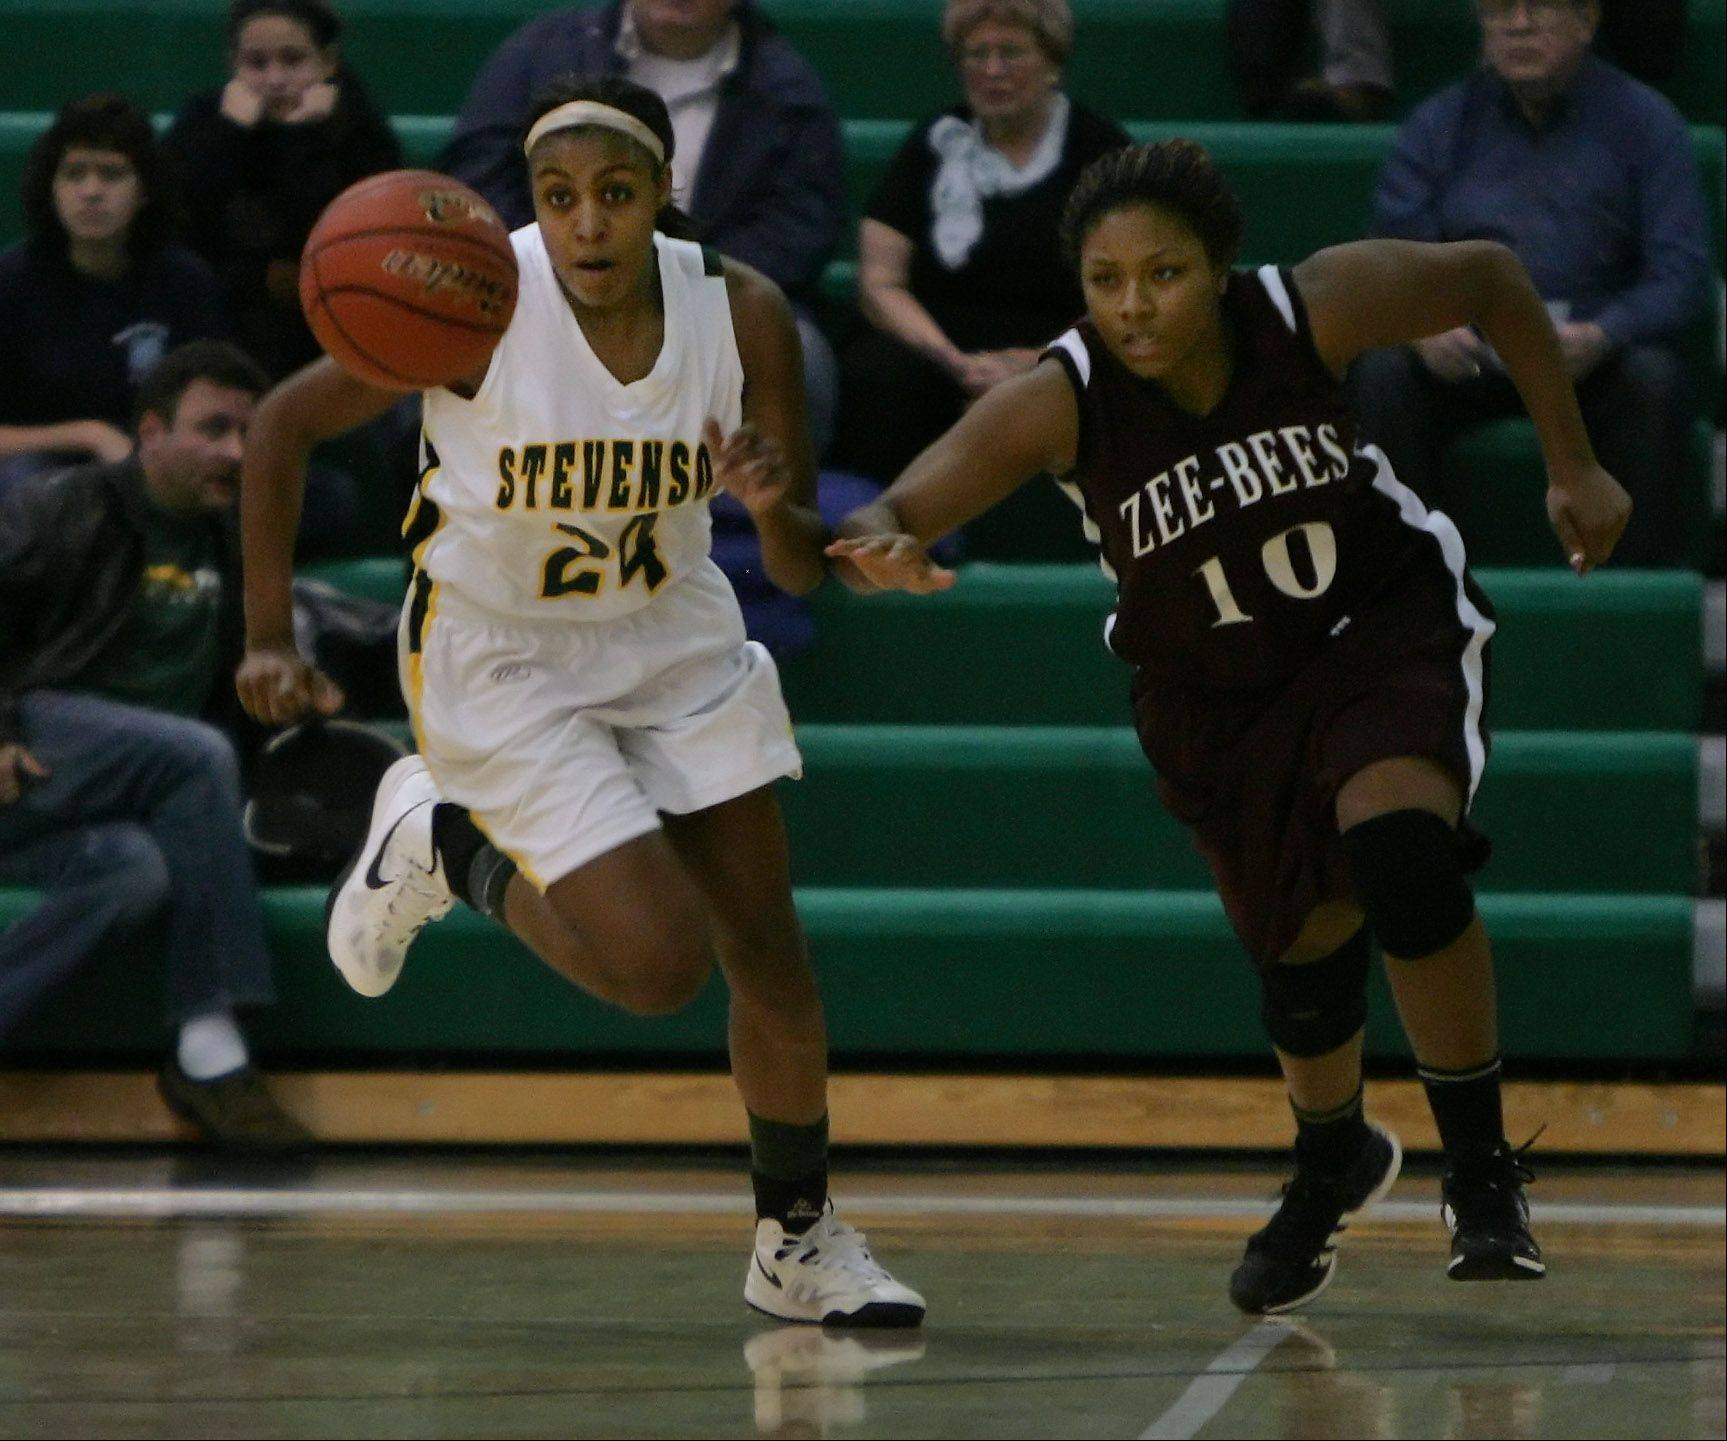 Images: Zion-Benton vs. Stevenson girls basketball